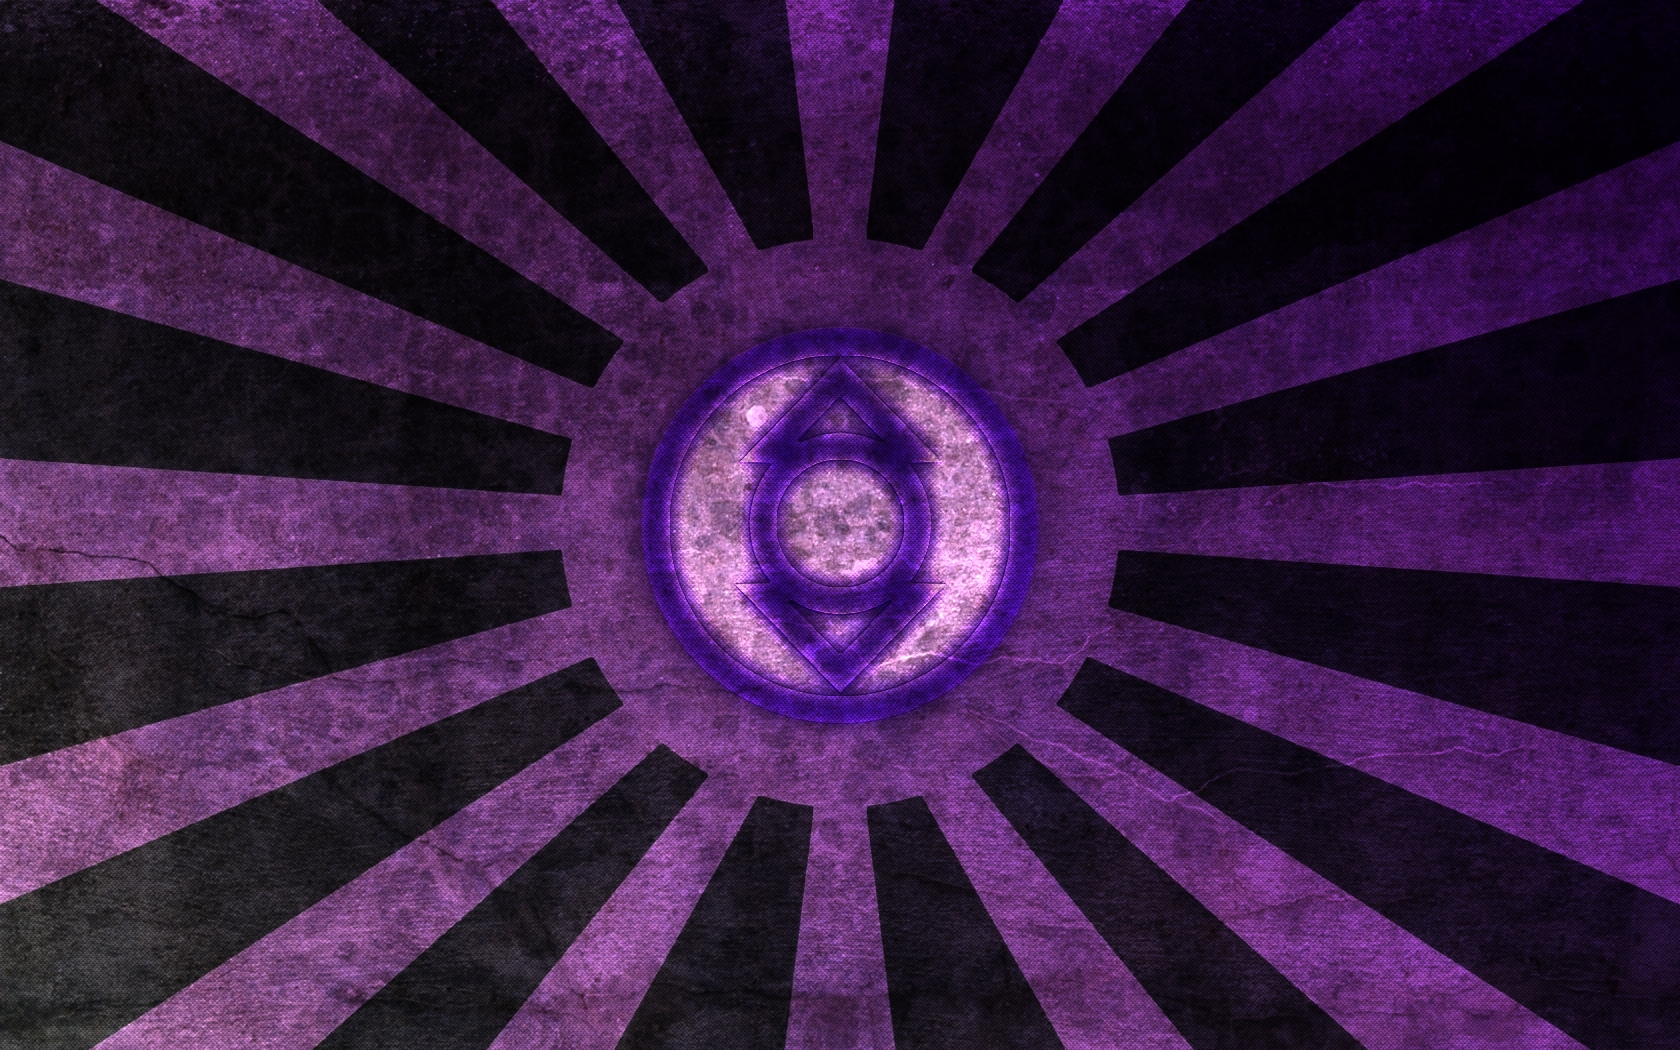 Indigo Lantern Wallpaper By Lordshenlong On Deviantart HD Wallpapers Download Free Images Wallpaper [1000image.com]